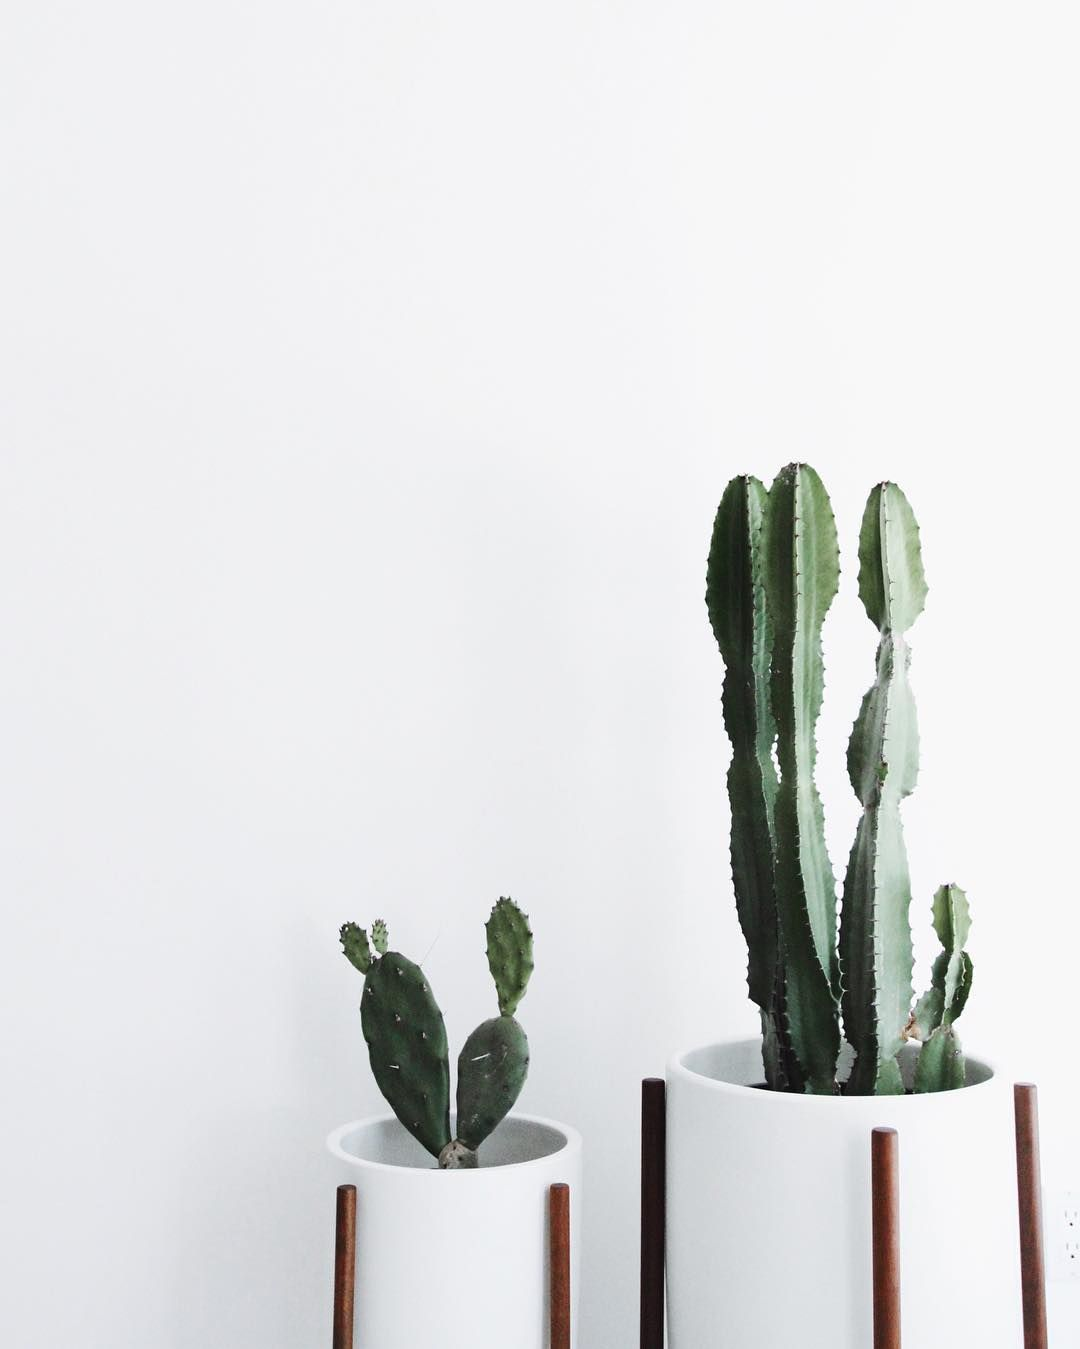 classy pictures of cactus house plants. Cacti babies in our new home  by mija Cactus Plants cactilove modernica